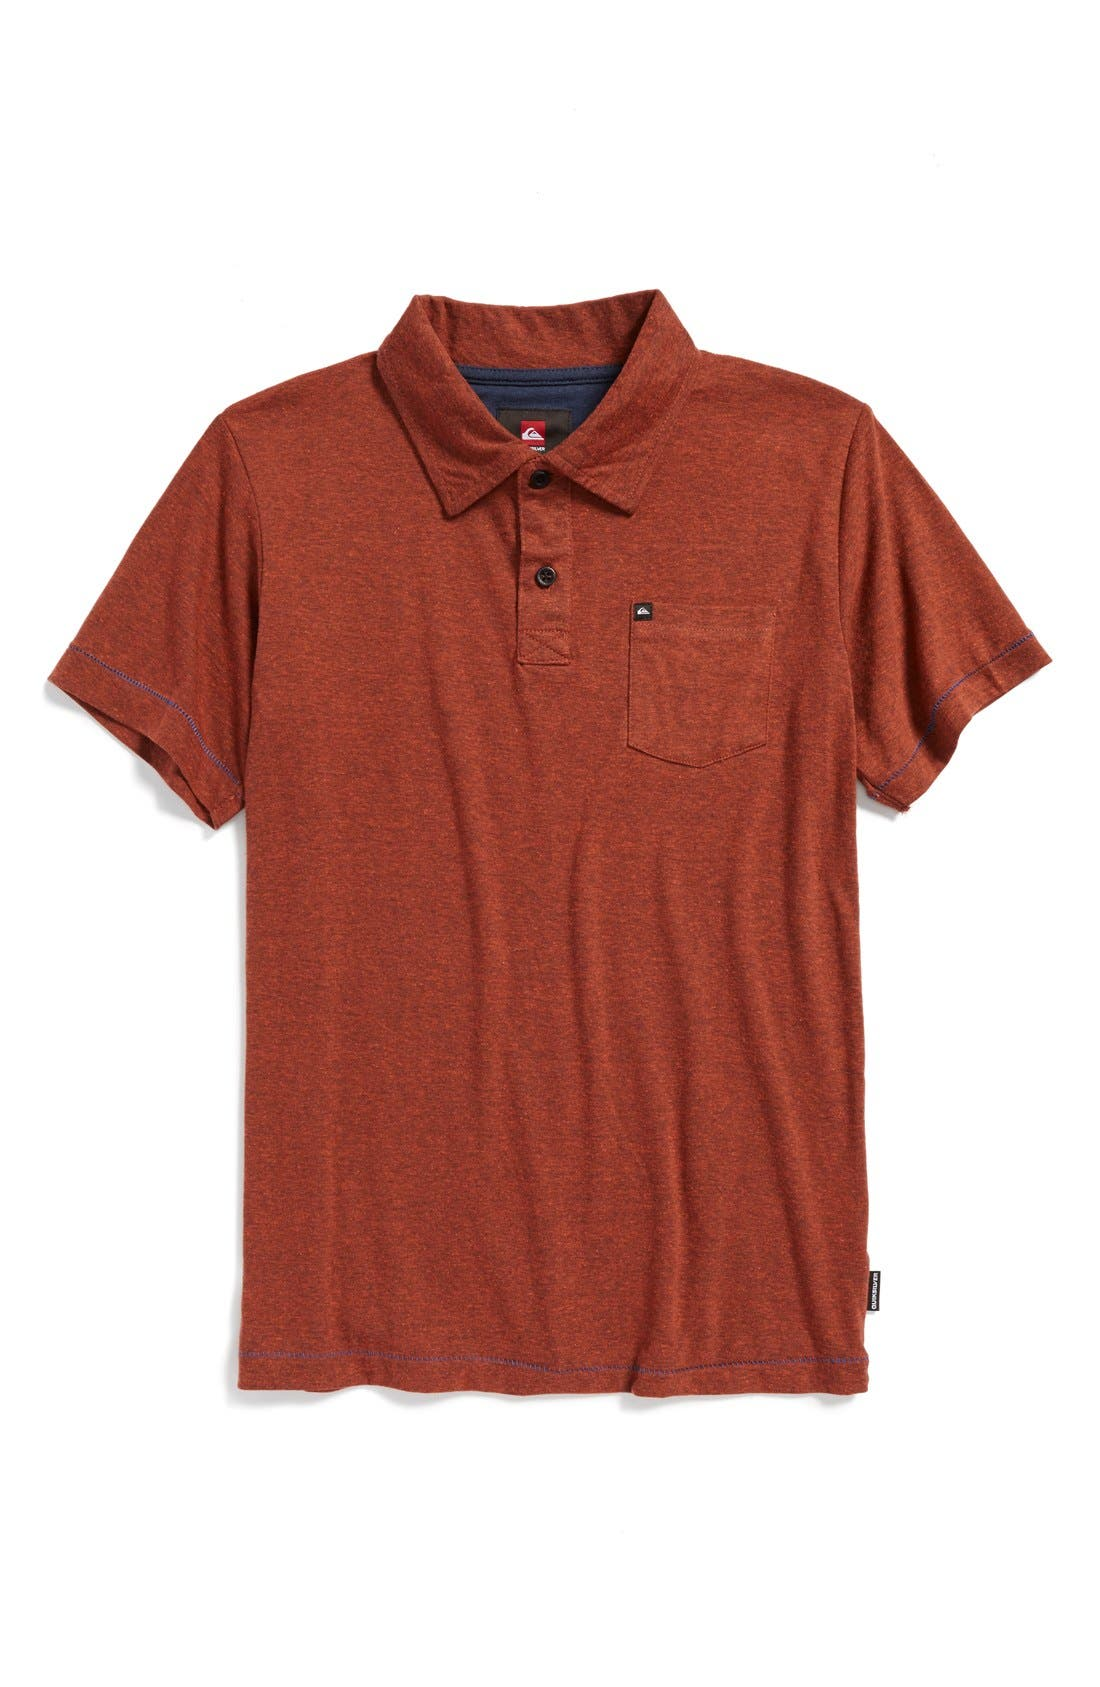 Alternate Image 1 Selected - Quiksilver 'Core' Cotton Blend Jersey Polo (Big Boys)